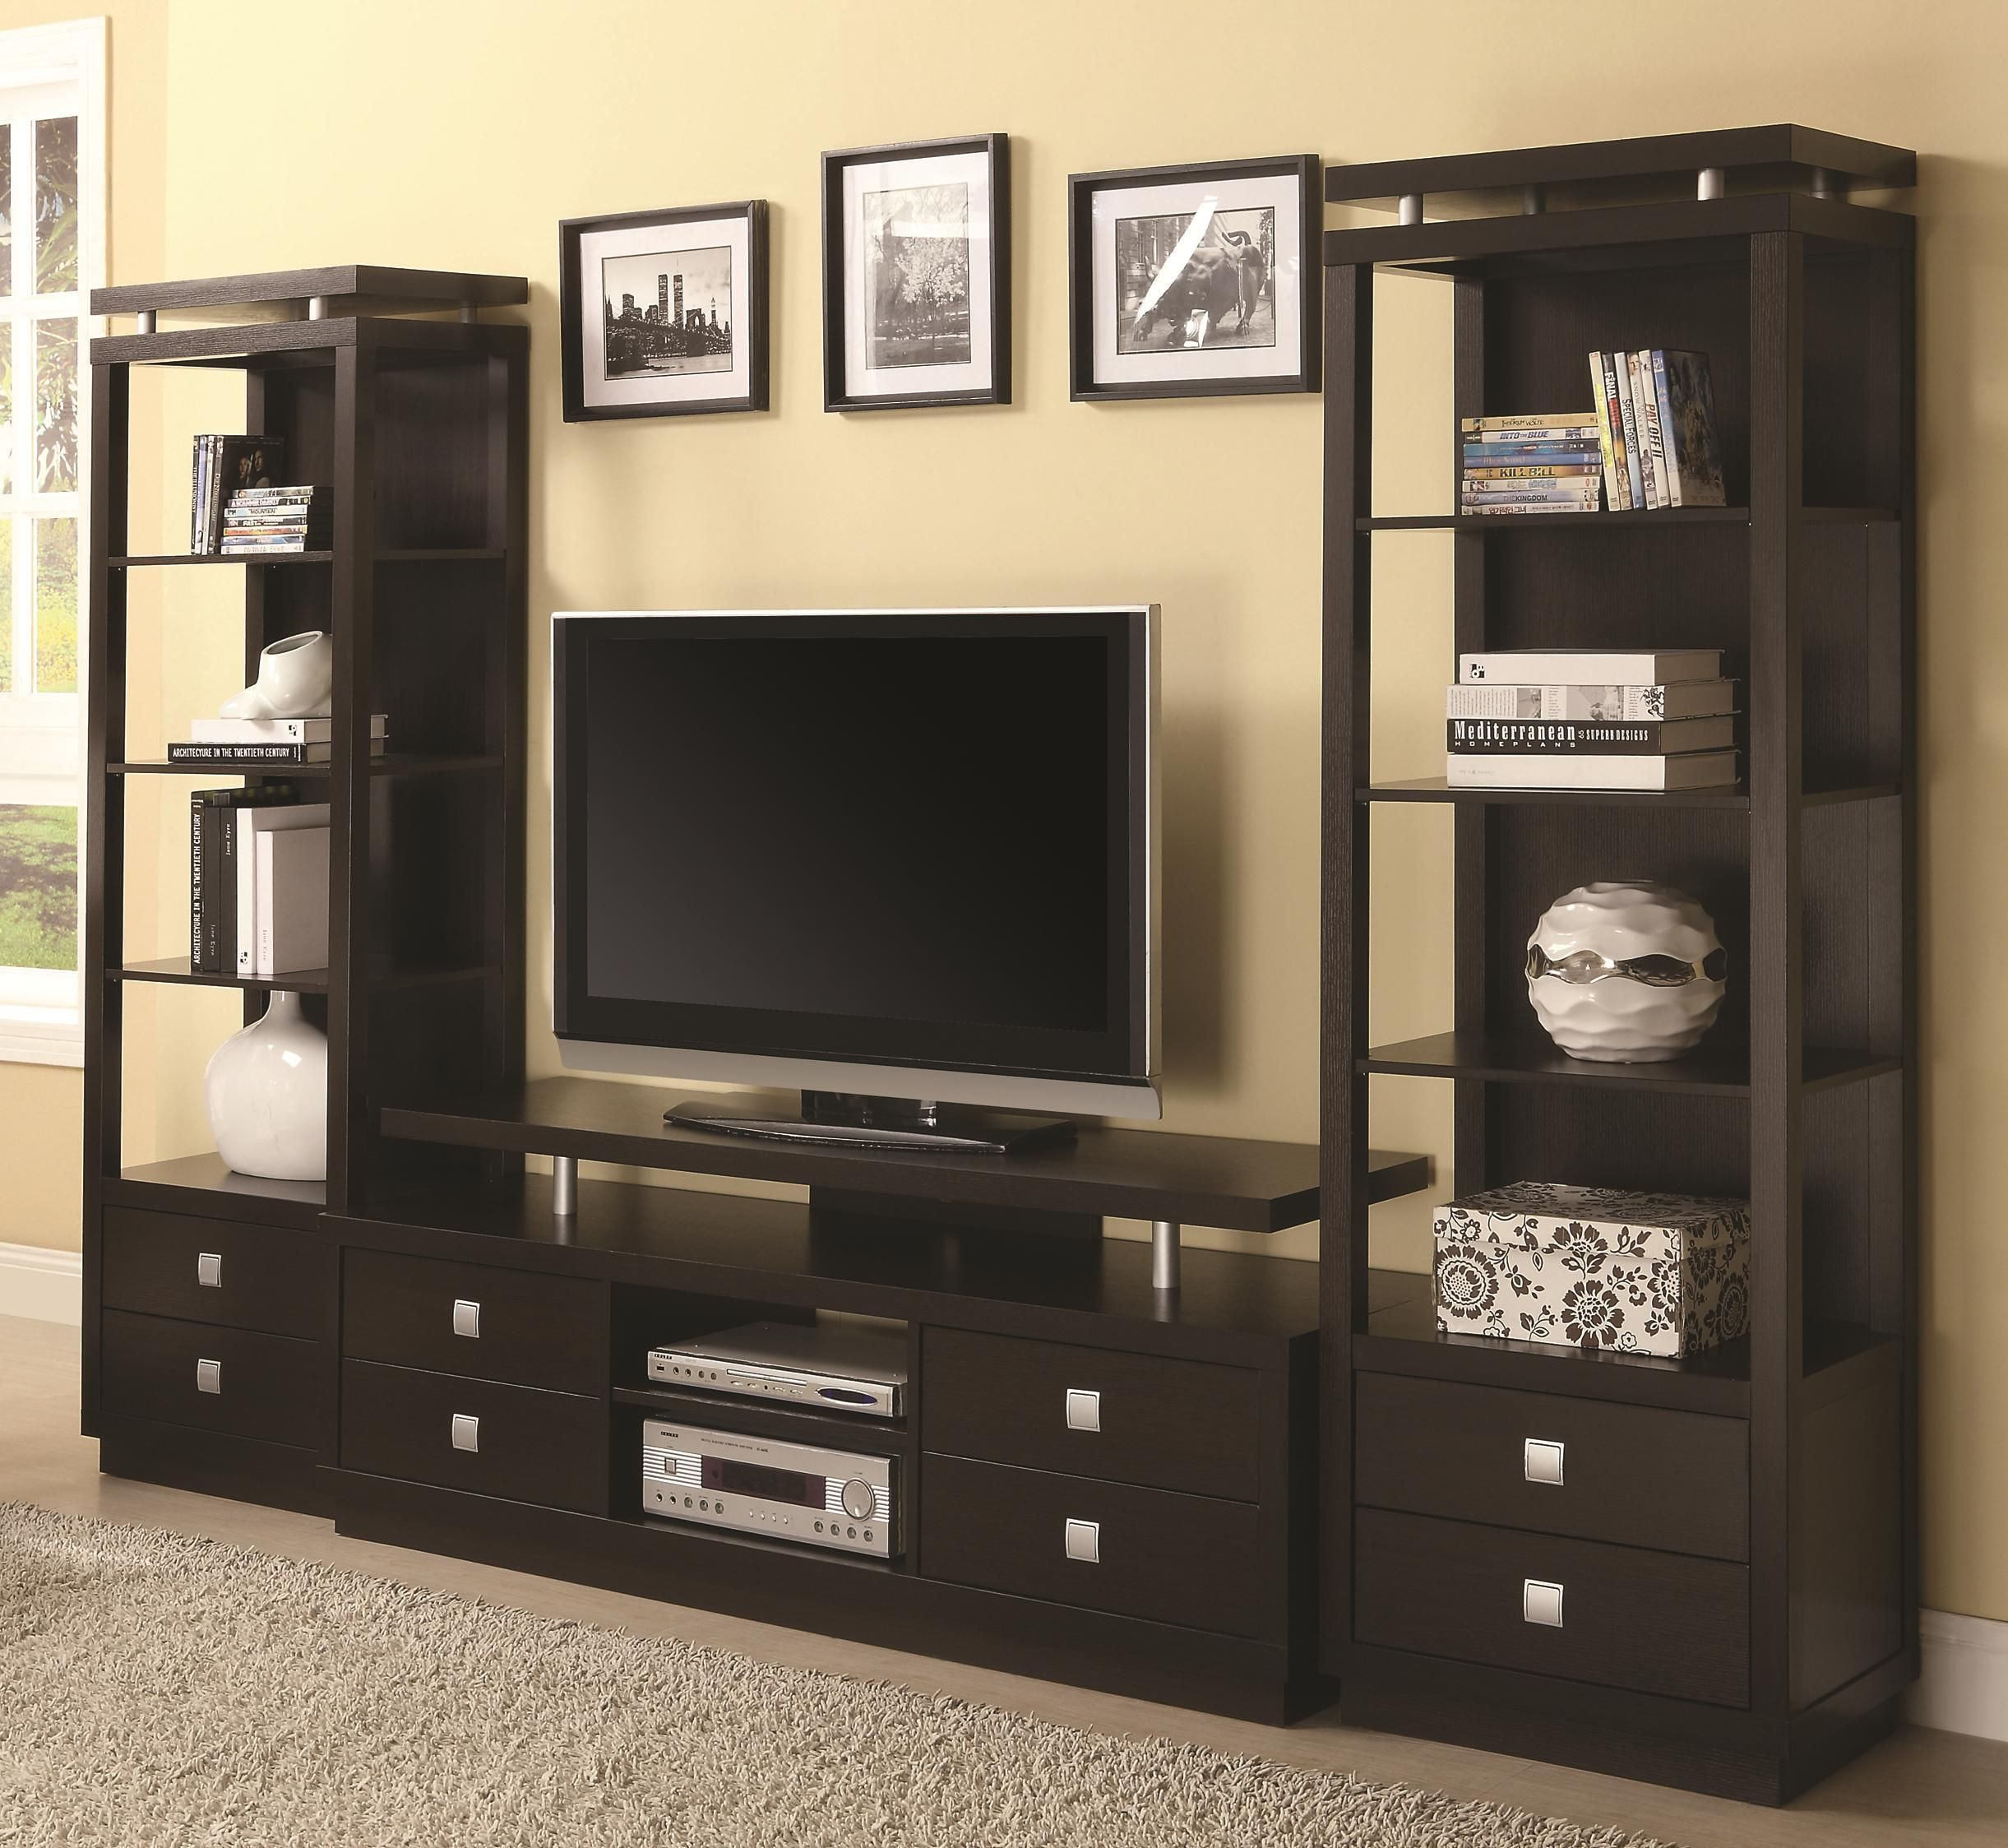 Furniture wall unit